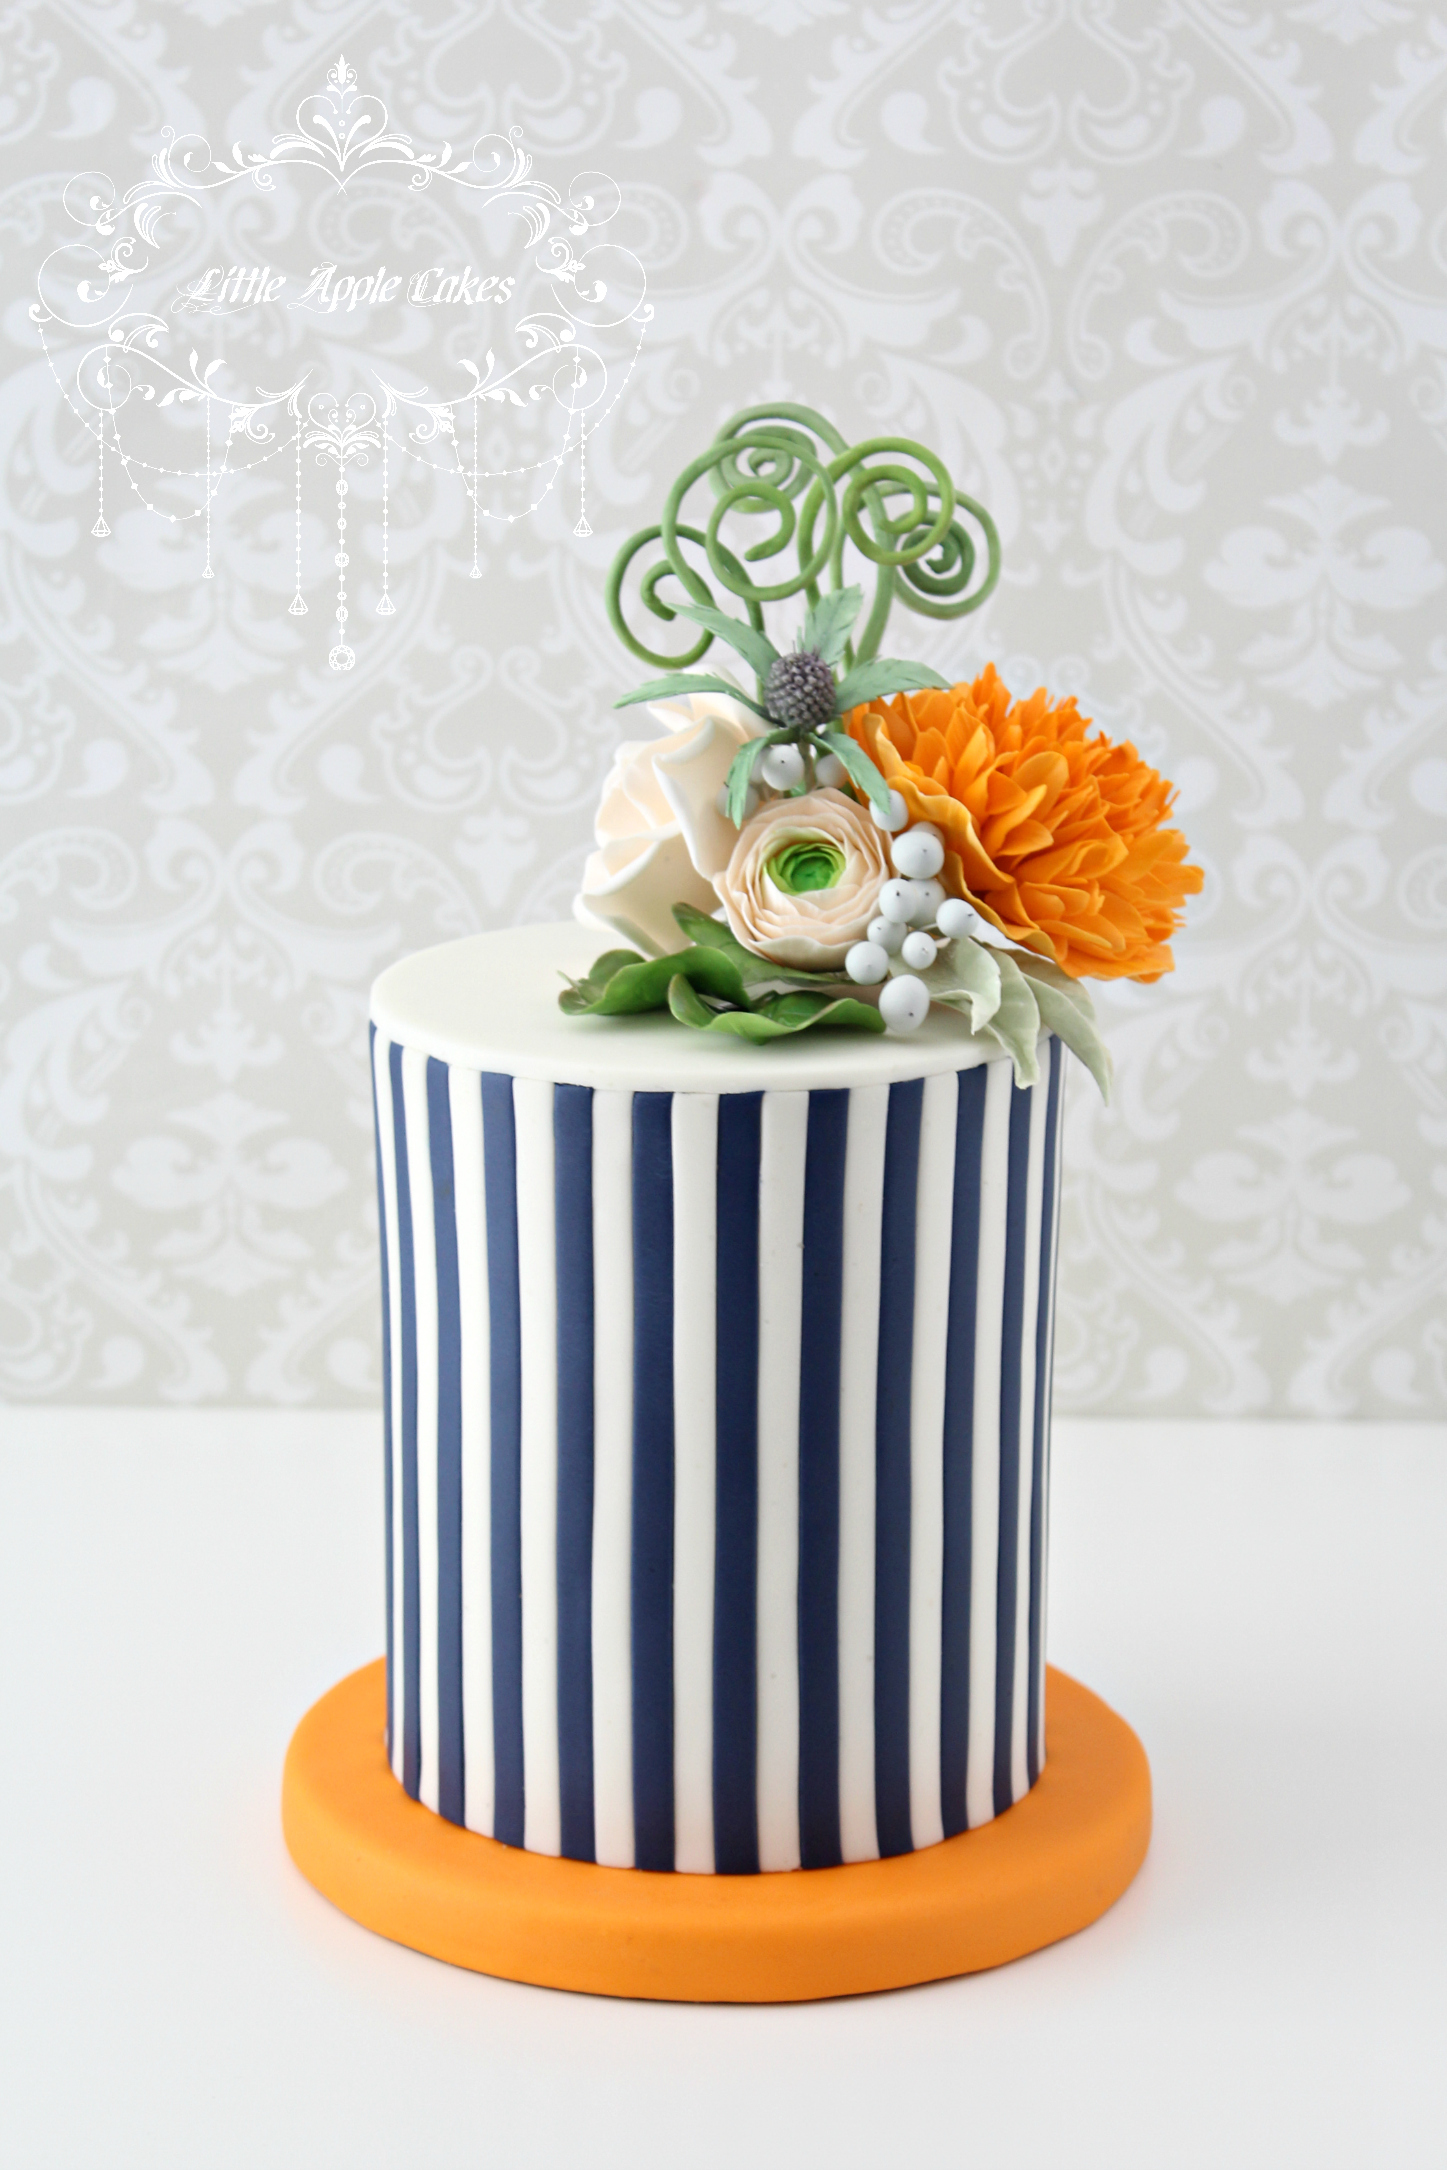 Blue & White Striped fondant Wedding with Sugar Flowers